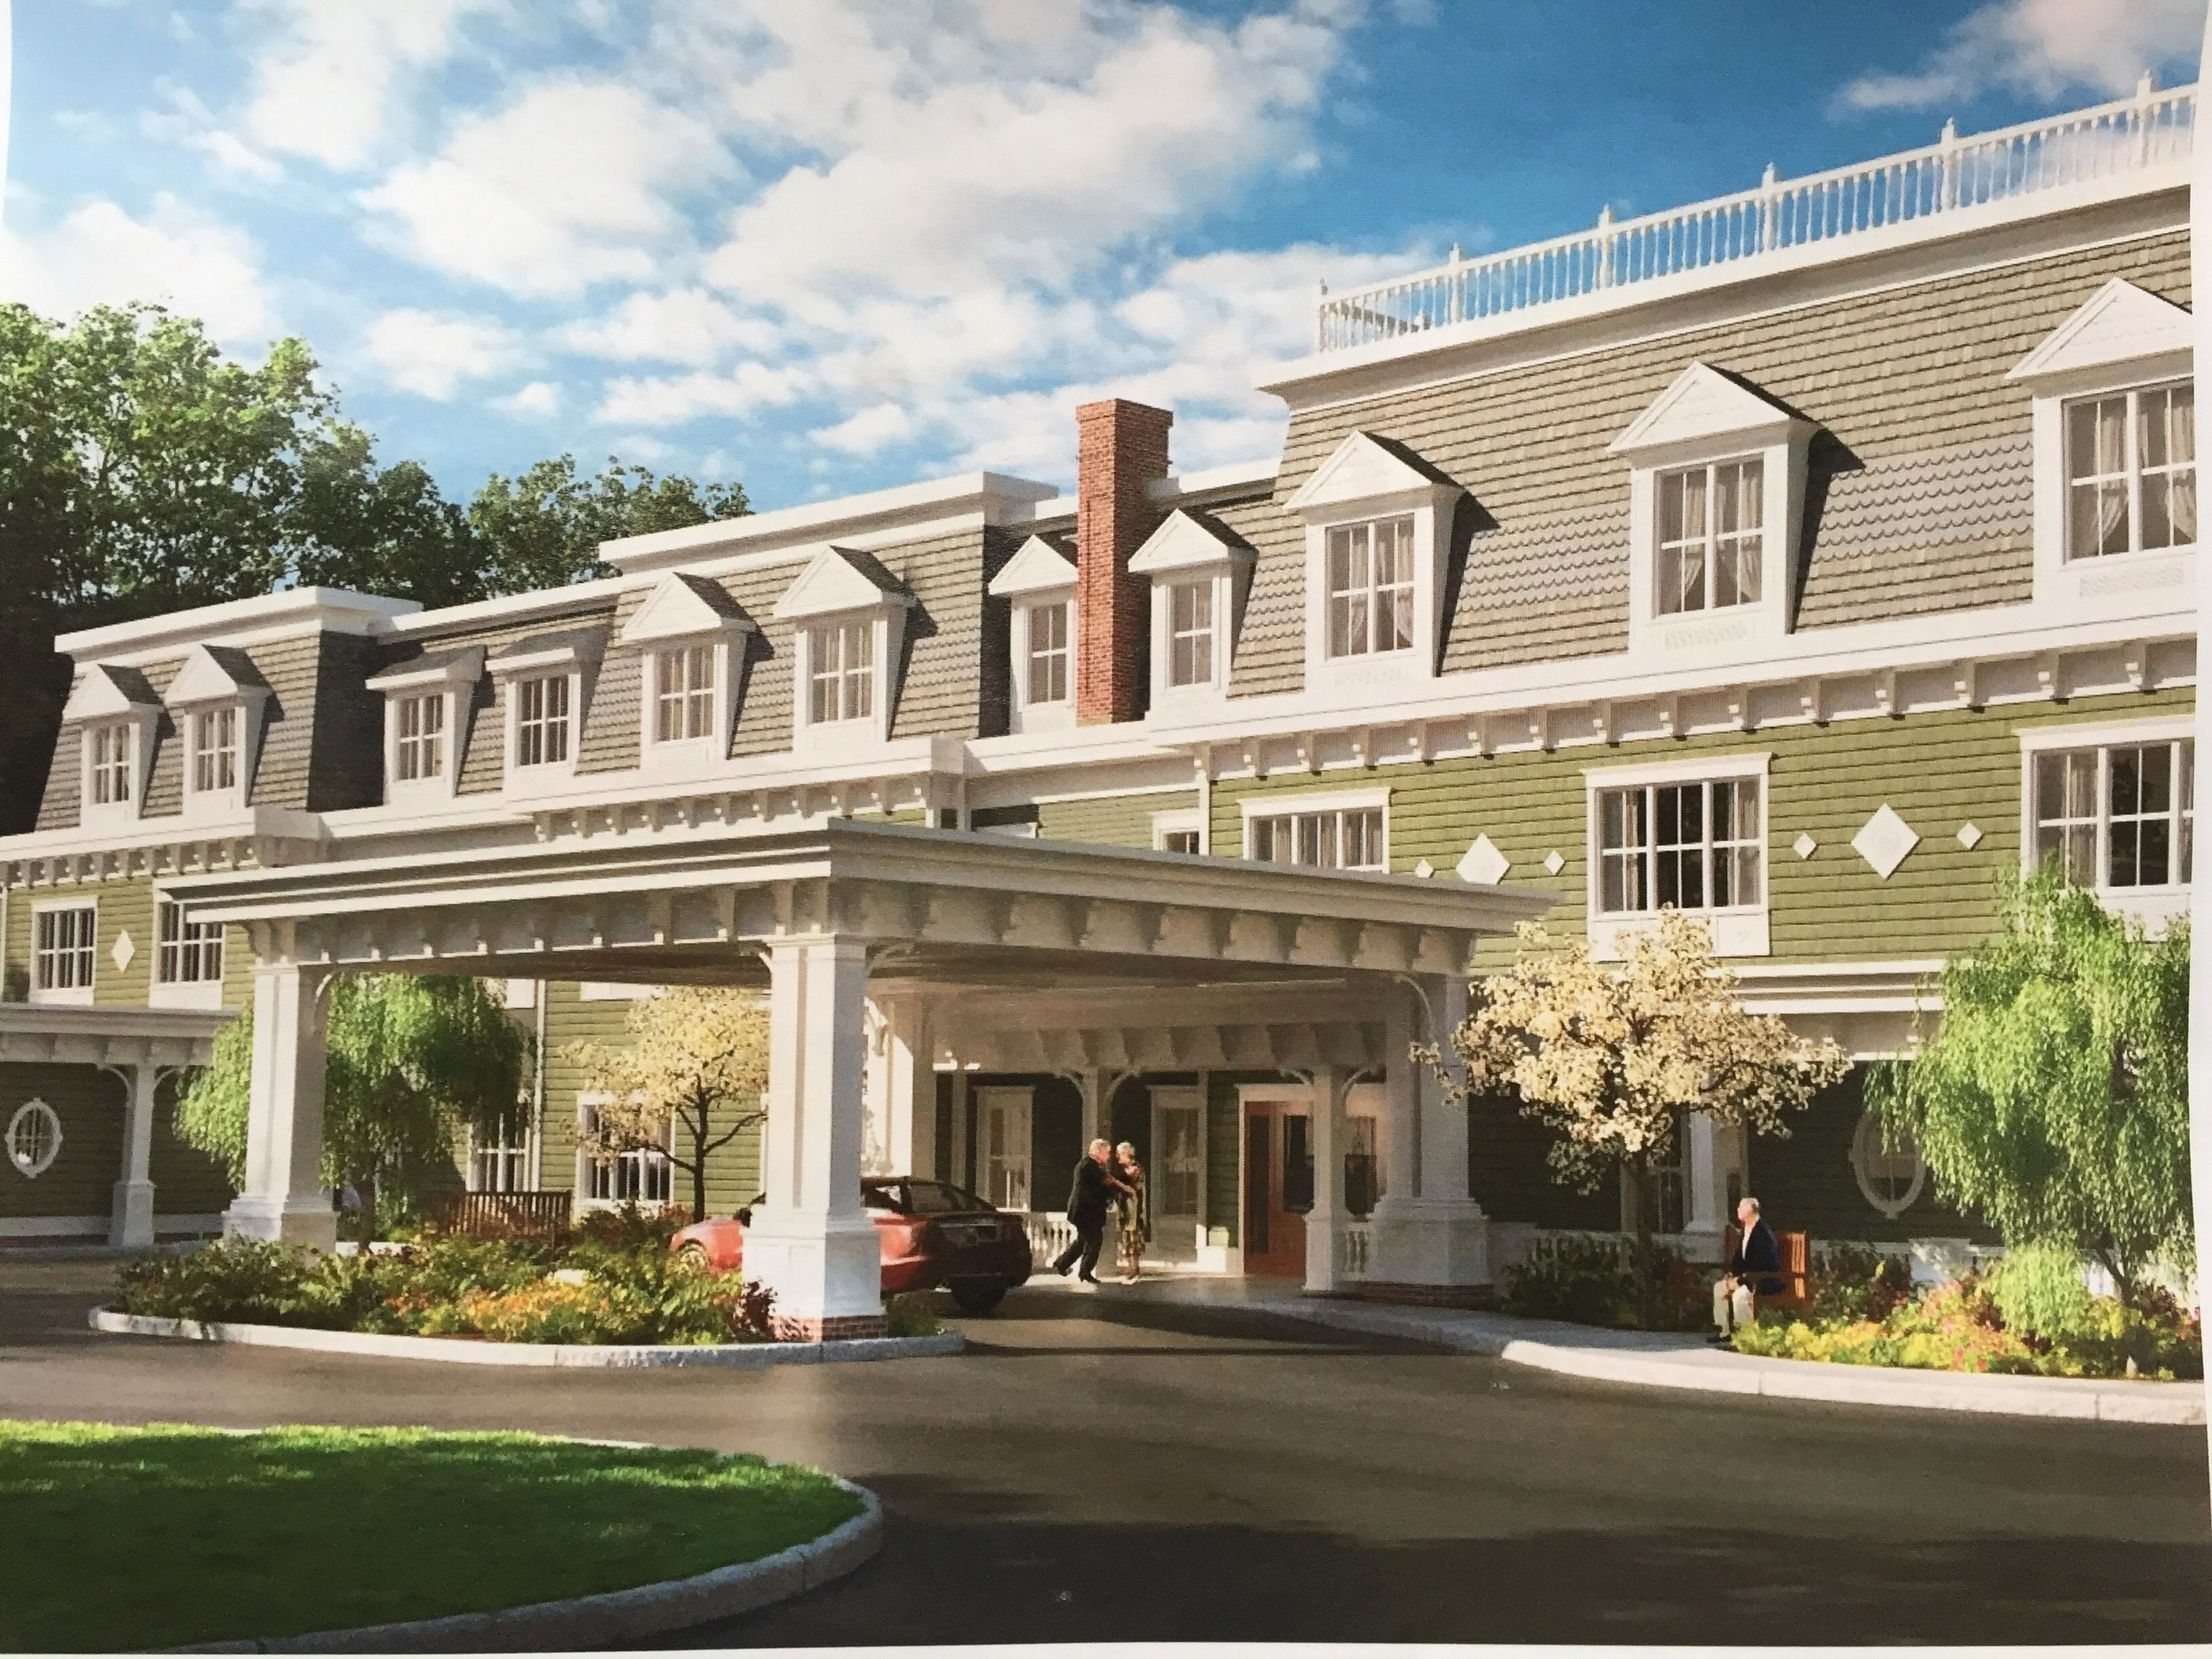 The proposed 174,557-square-foot Brightview Senior Living assisted living facility would create 166 apartments for seniors across three plots of land in Dix Hills totaling 10 acres.